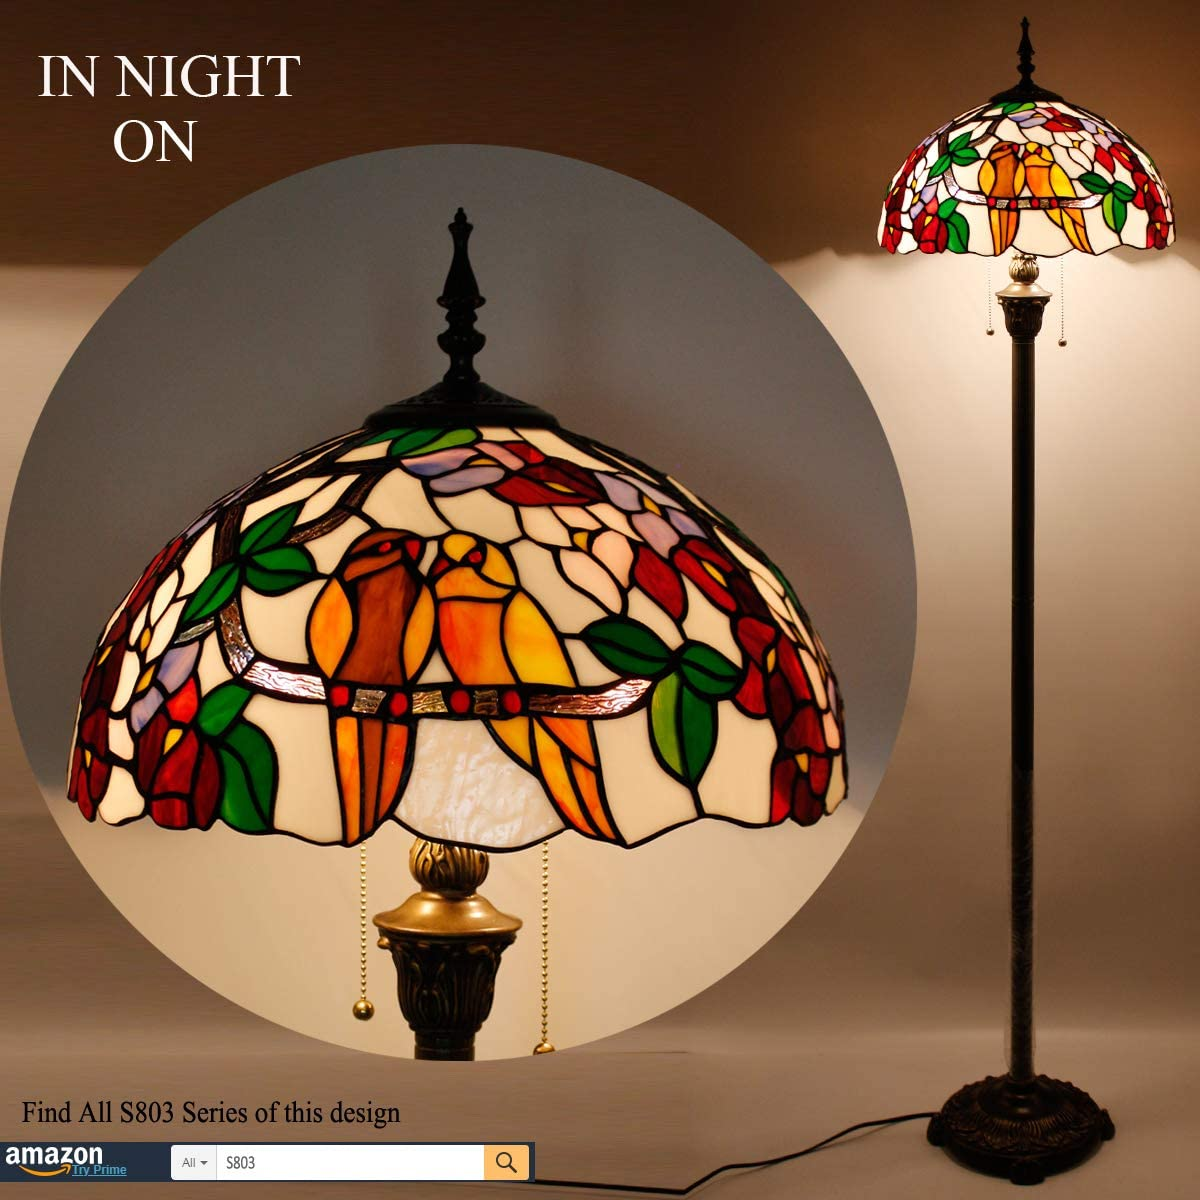 Stained Glass Lamp Blue White Baroque Tiffany Style Table Light 2E26 1E12 W16H22 Inch Night Light Antique Base for Living Room Bedroom Bedside Desk Light S003B WERFACTORY